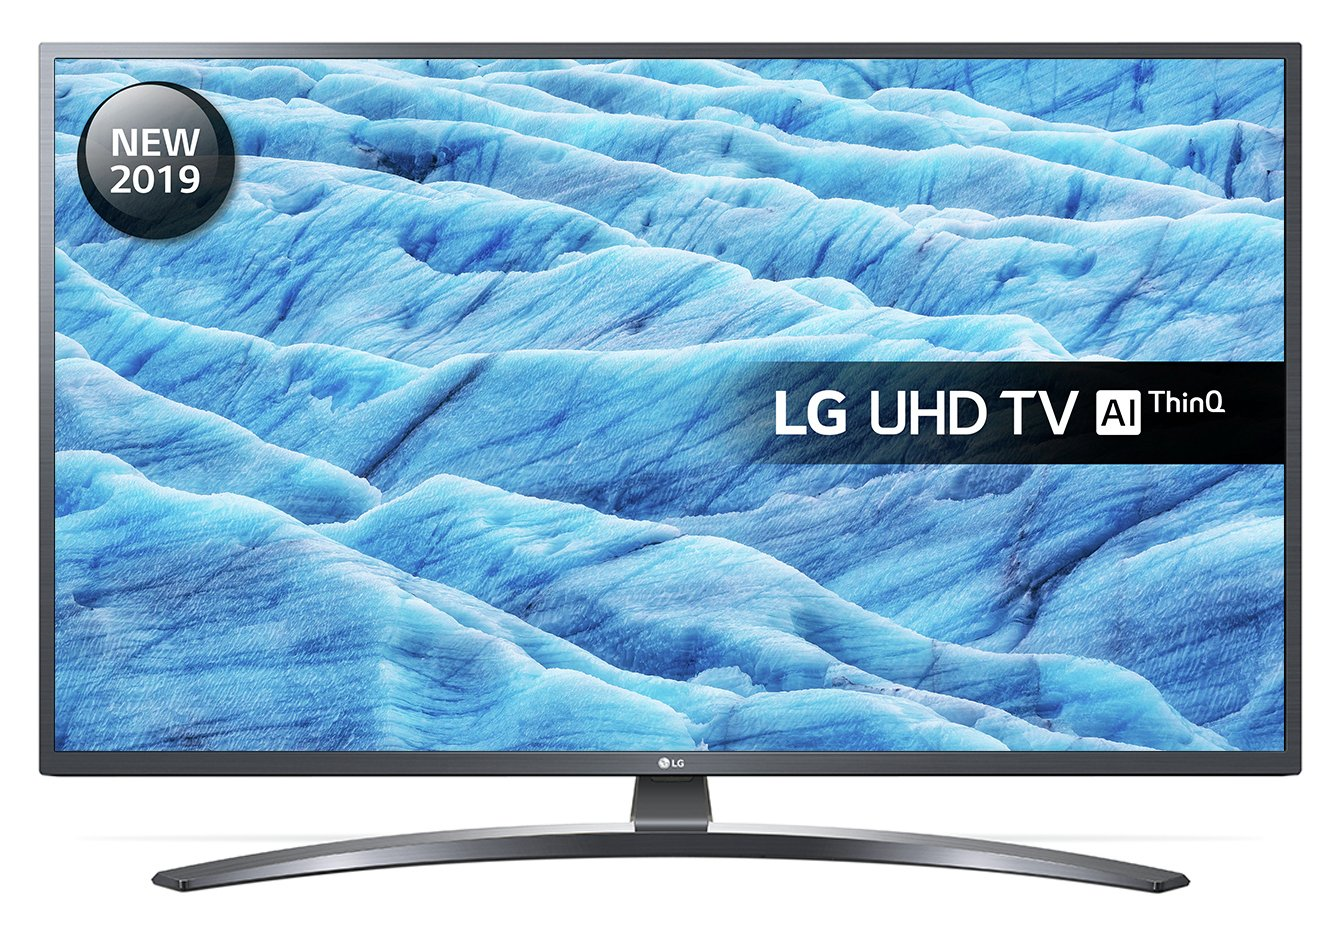 LG 49 Inch 49UM7400PLB Smart 4K HDR LED TV